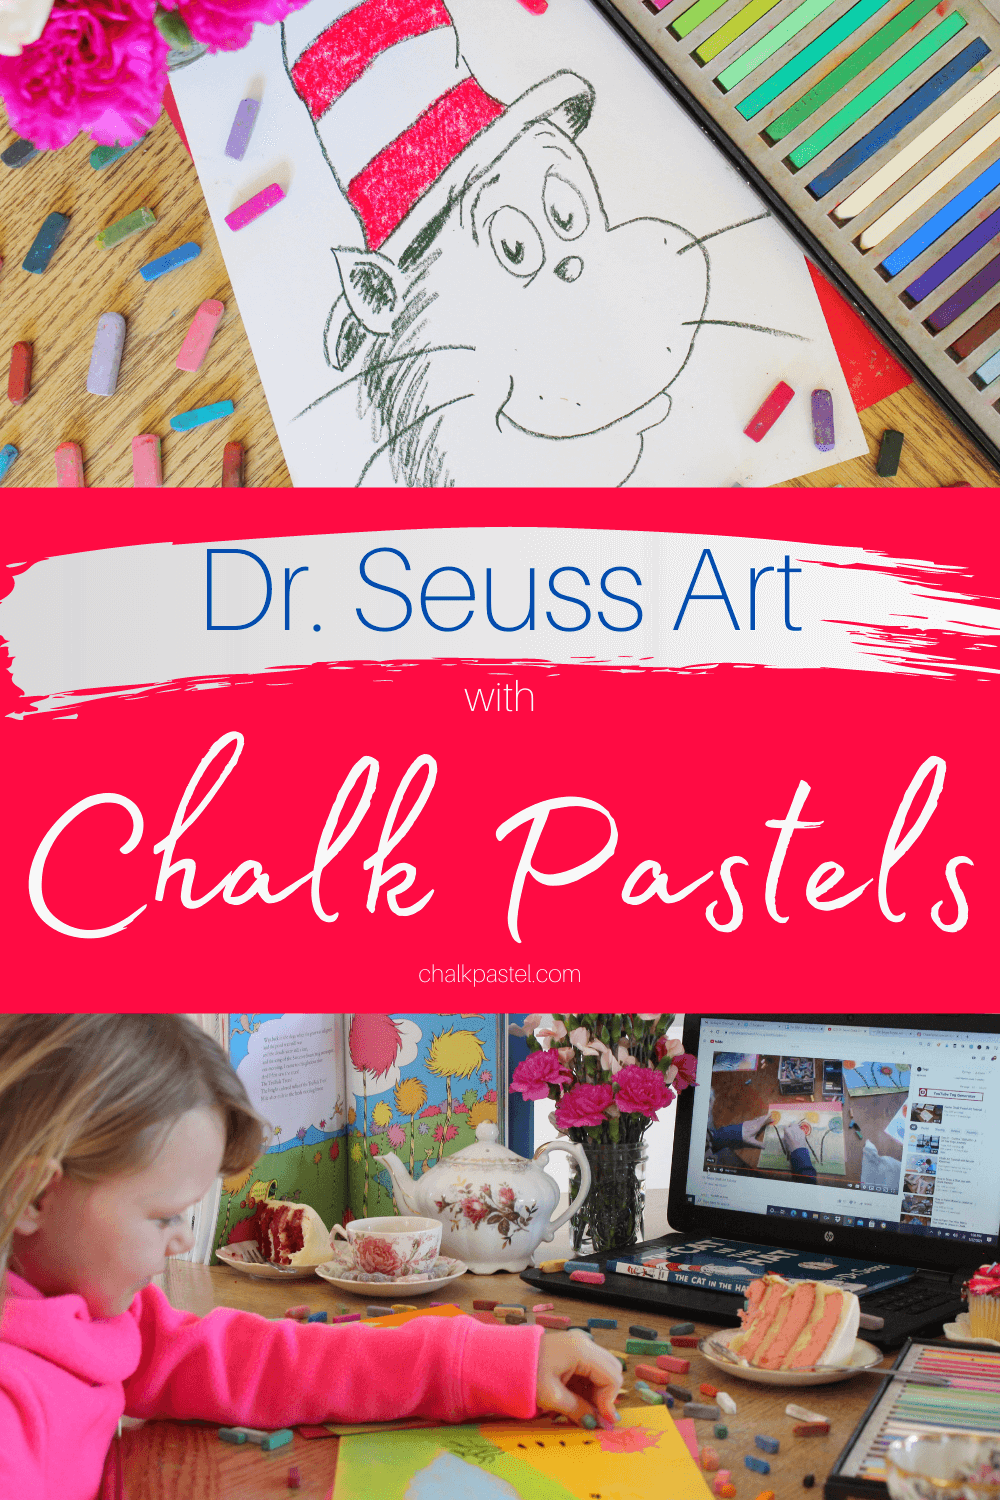 Dr. Seuss Art with Chalk Pastels: Dr. Seuss art with chalk pastels? Yes, please! How adorable would a Cat in the Hat be hanging on your refrigerator? How about the lovely Truffala Trees? Nana has a lesson for both! Now you and your kiddo can enjoy a Seussical art time with chalk pastels! #chalkpastels #DrSeussArt #DrSeussArtforkids #thecatinthehatart #truffalatreesart #homeschoolart #teatimeart #teatimeartlessons #DrSeussartlessons #chalkpastelarttime